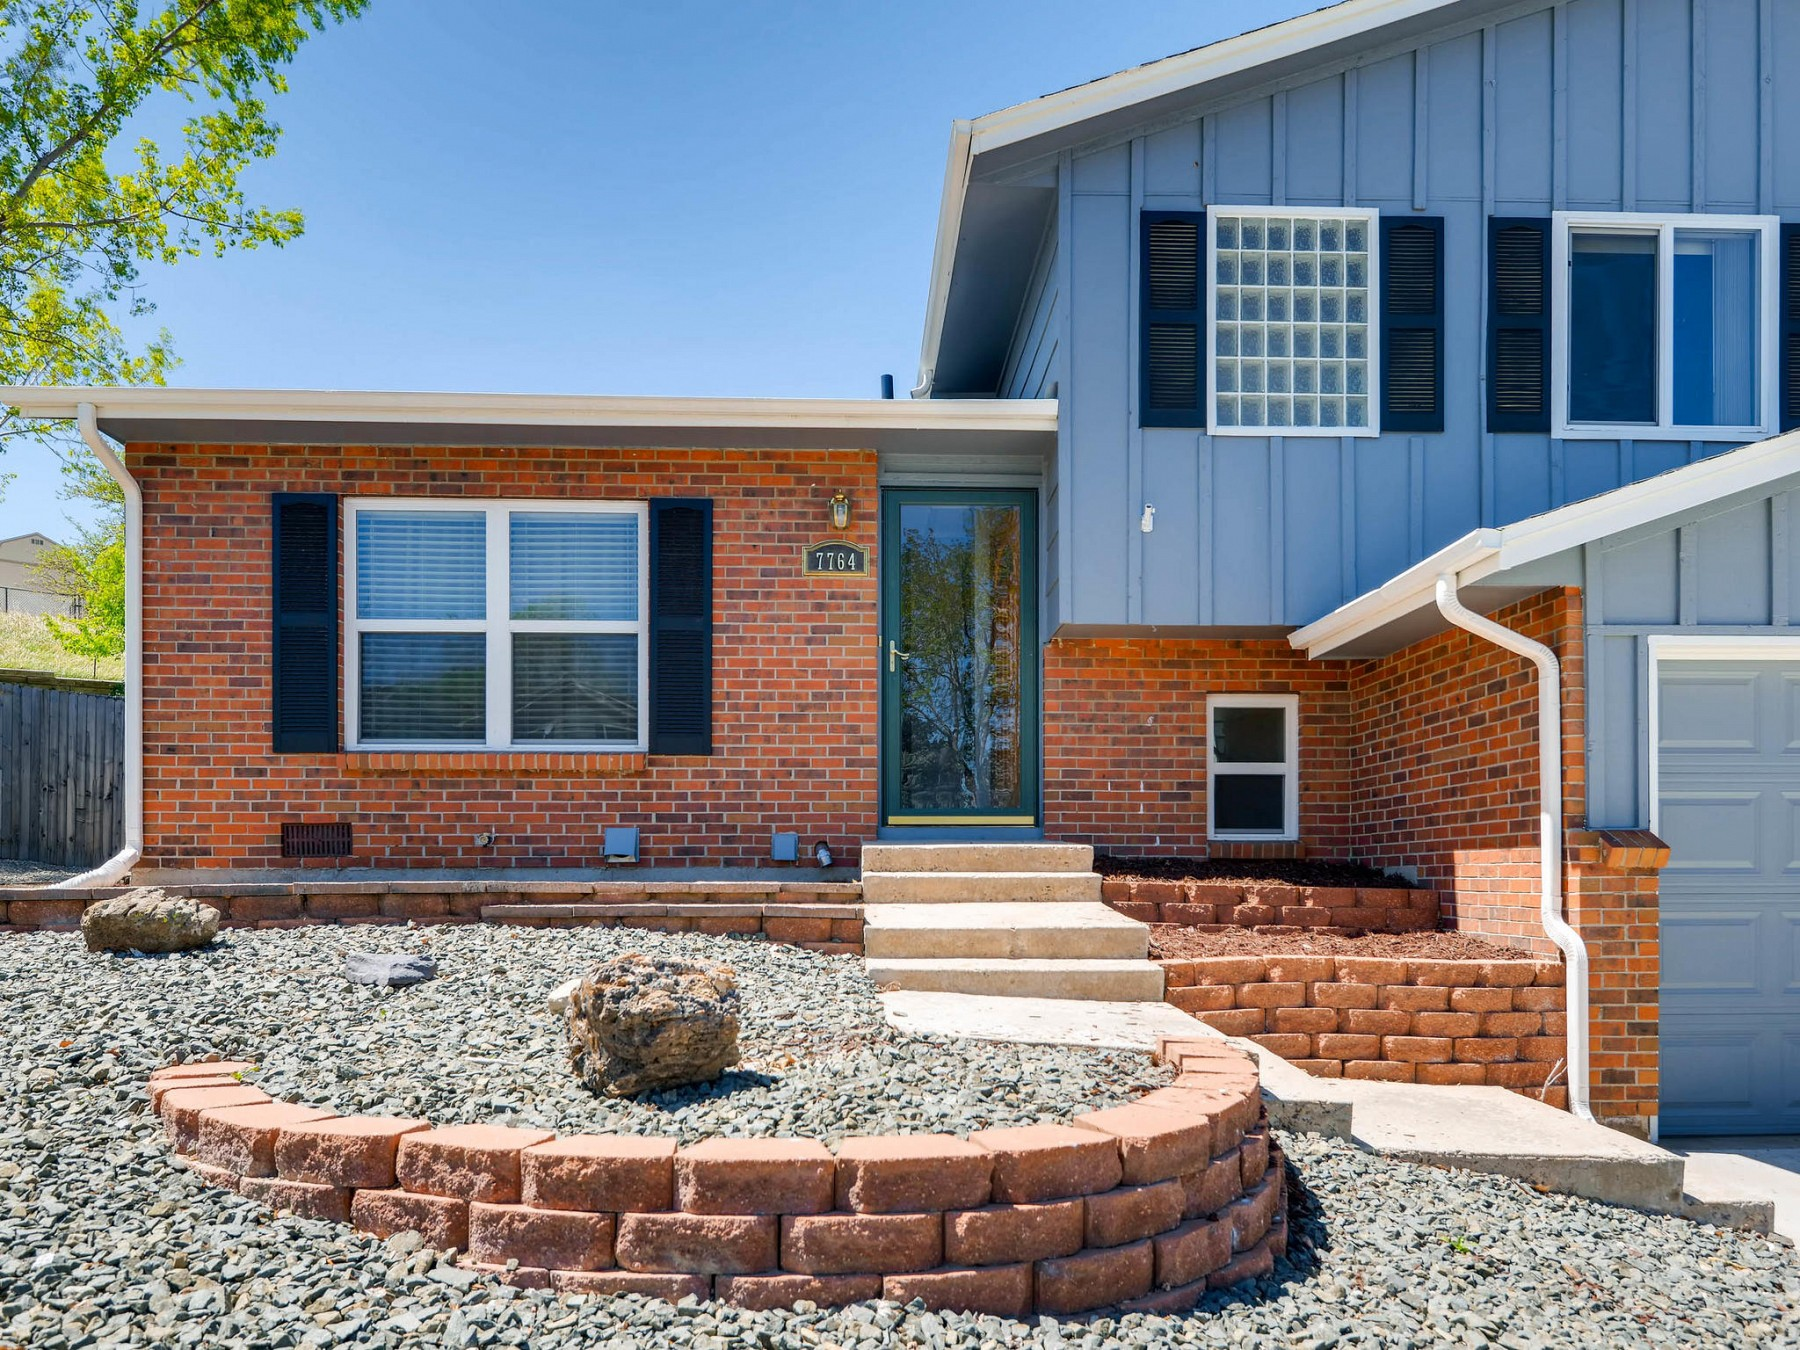 7764 West Plymouth Place, Littleton, CO 80128